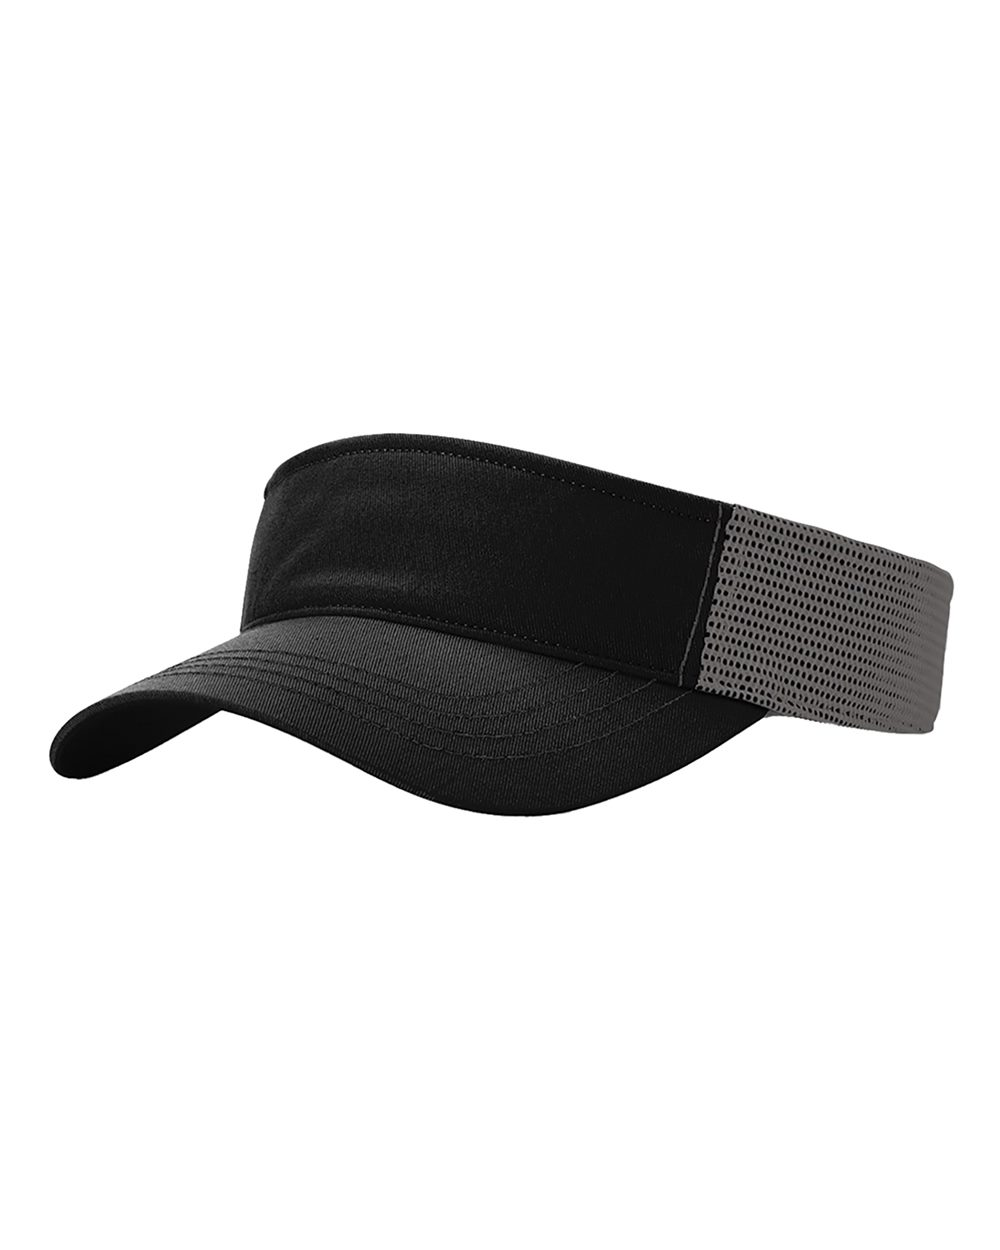 Richardson 712 - Trucker Visor